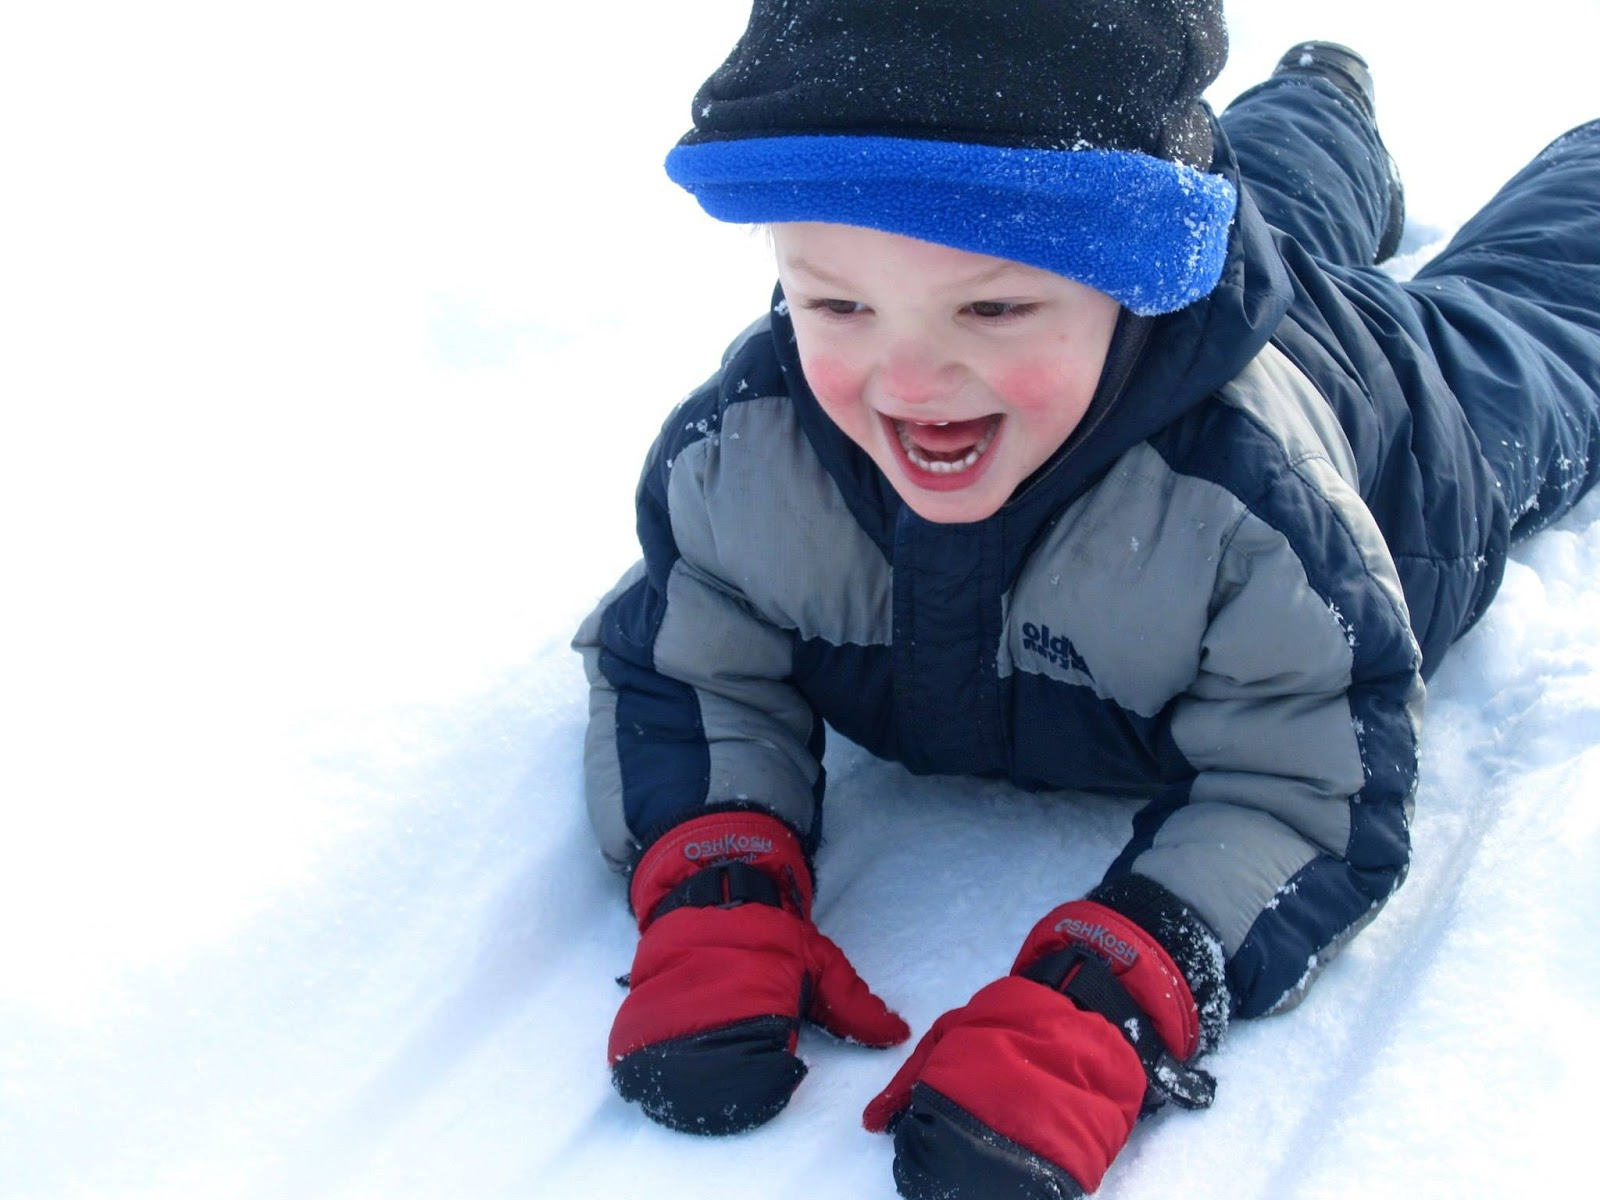 grandson playing in the snow